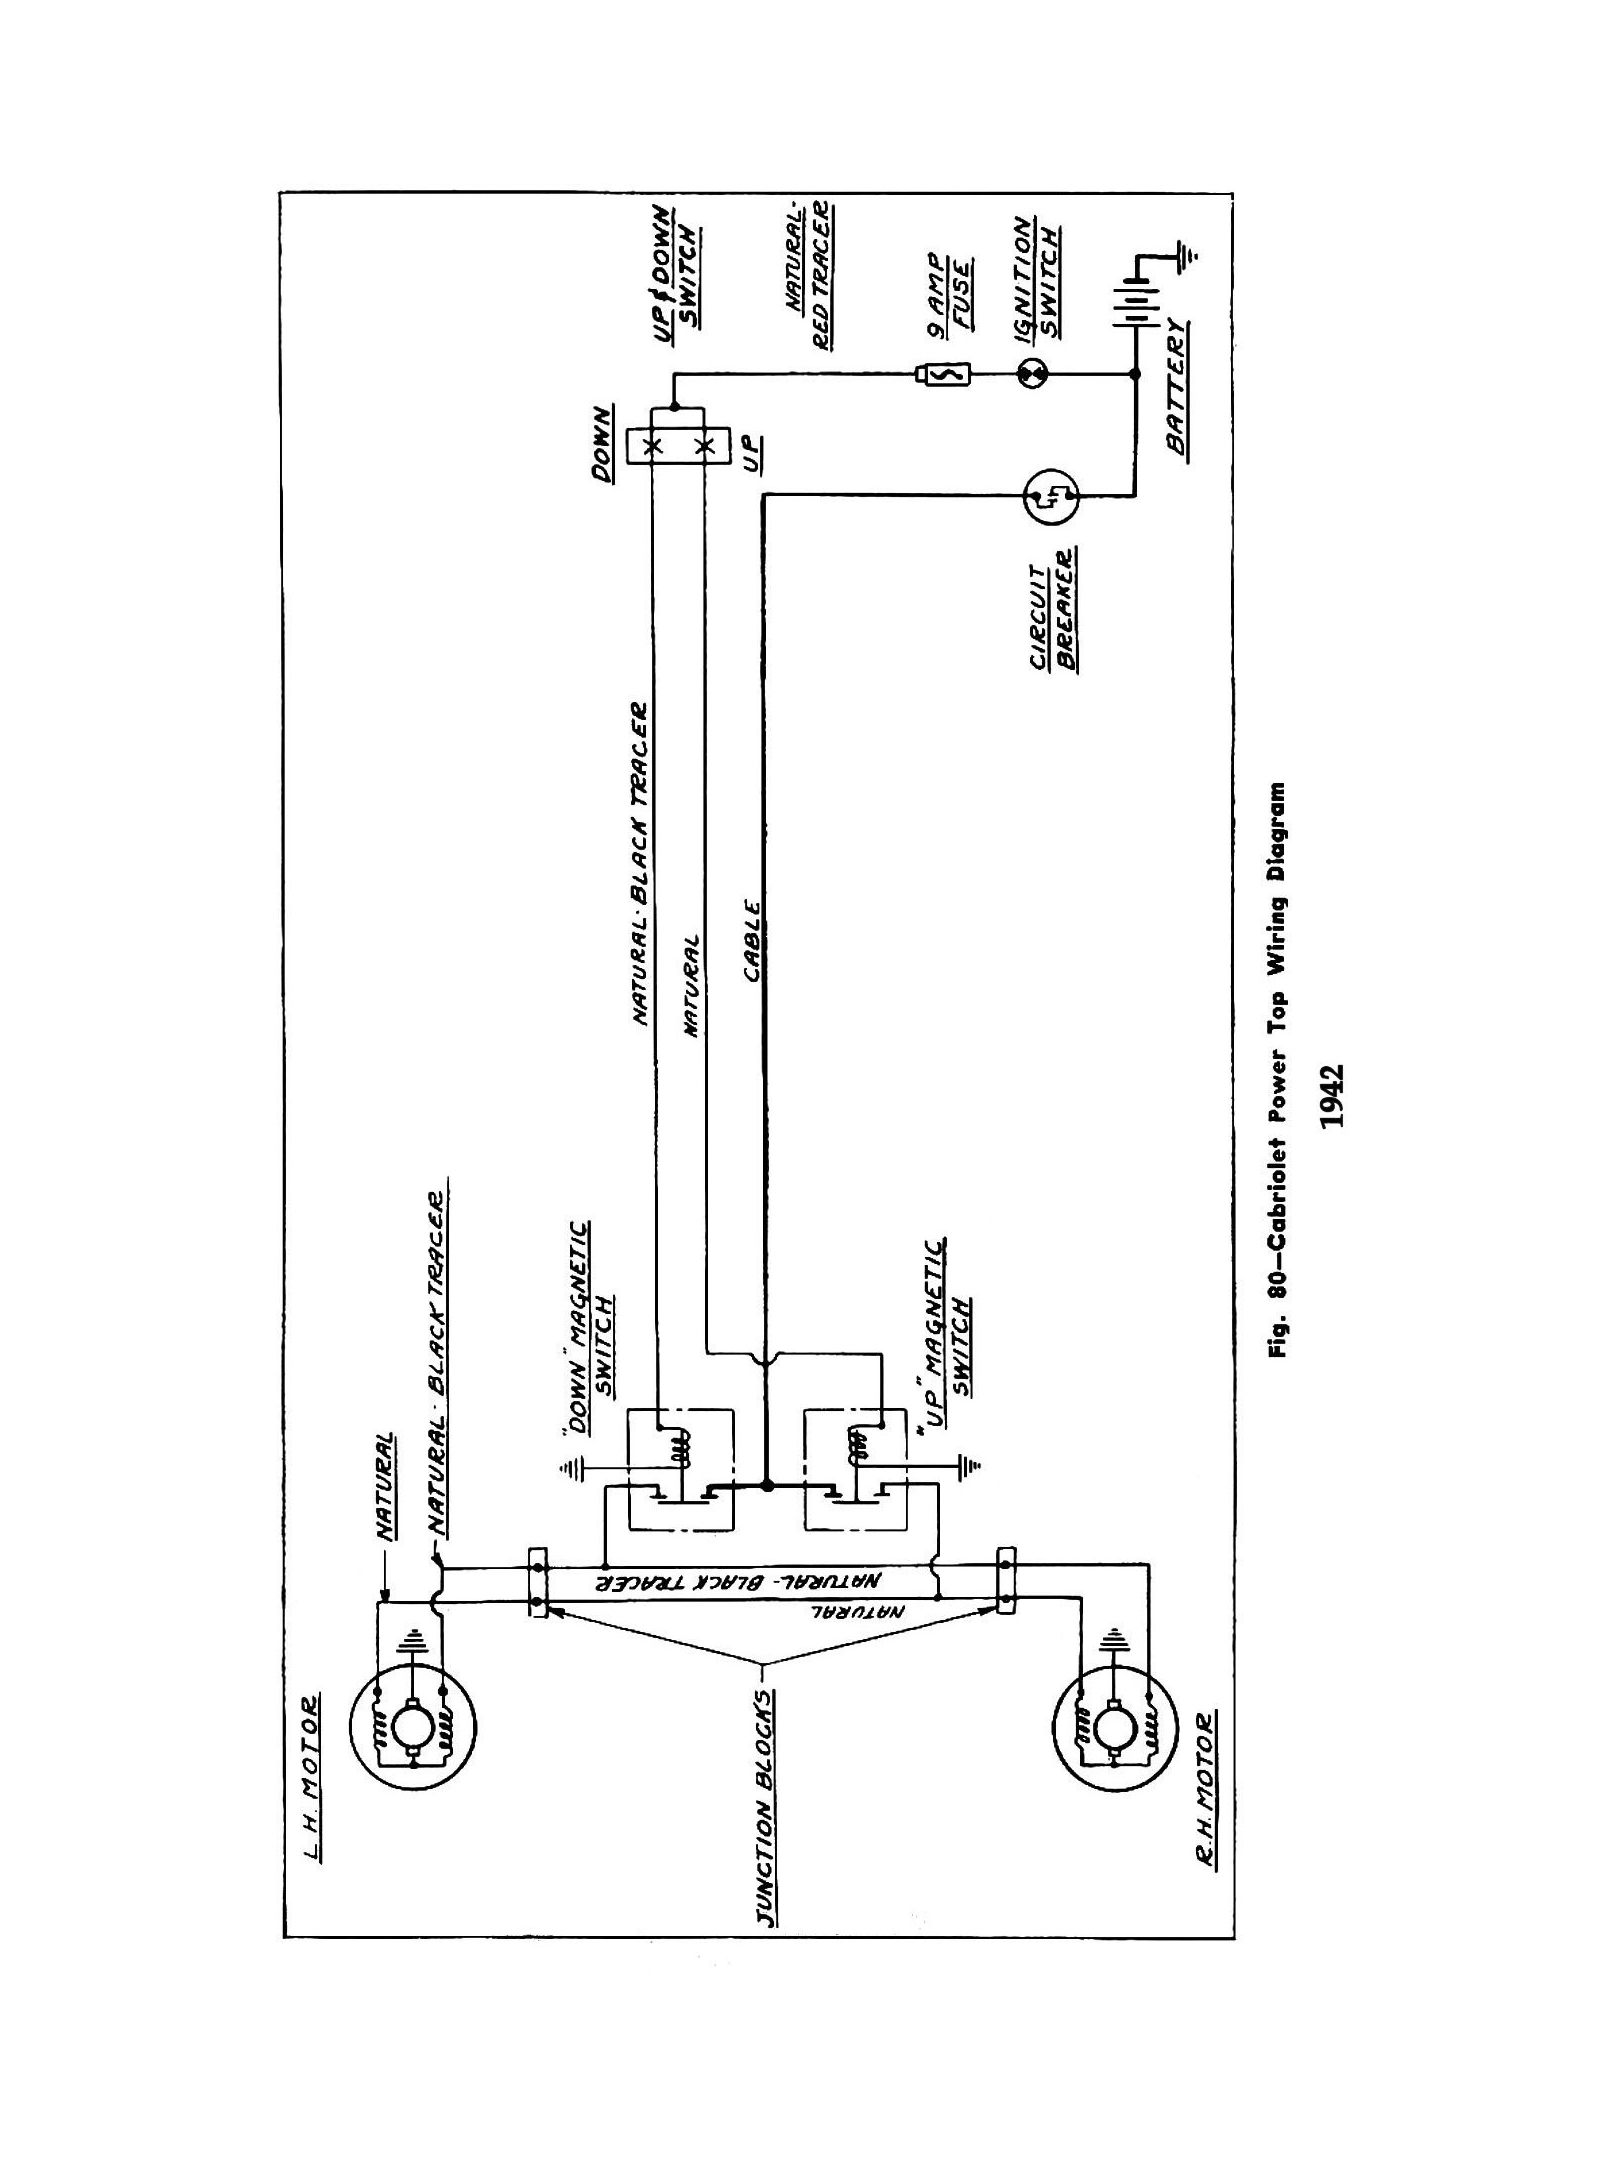 ke light switch wiring diagram